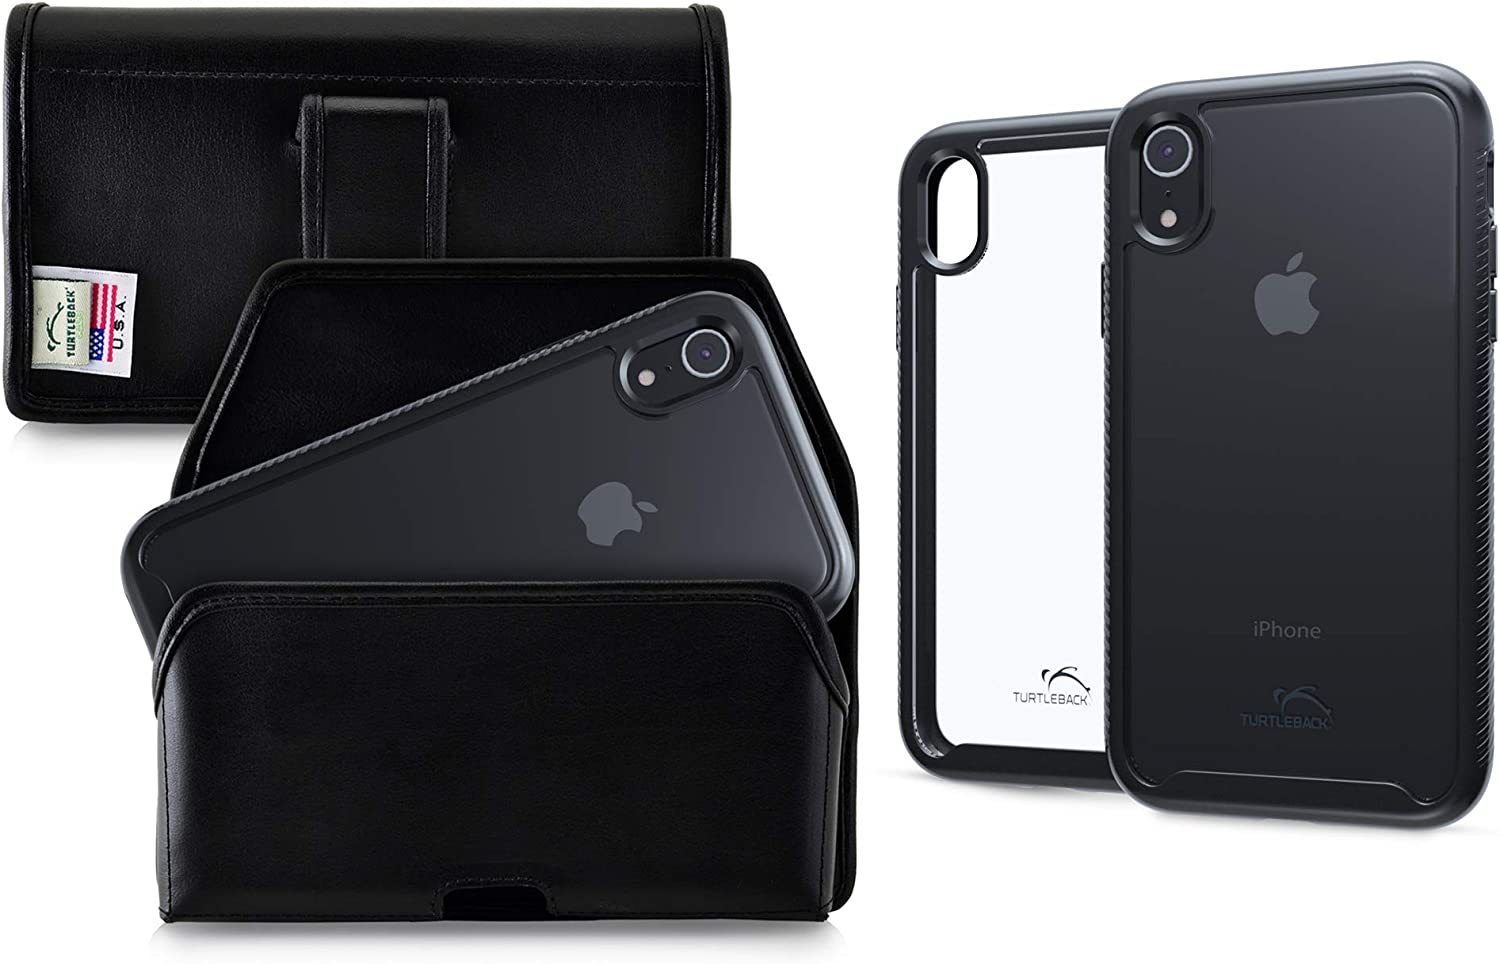 Turtleback Tough Defense Case/Holster Combination Designed for iPhone XR Military Grade Drop Tested Ultra Clear Back Fitted in Black Leather Belt Pouch, Executive Belt Clip-Horizonal/Black